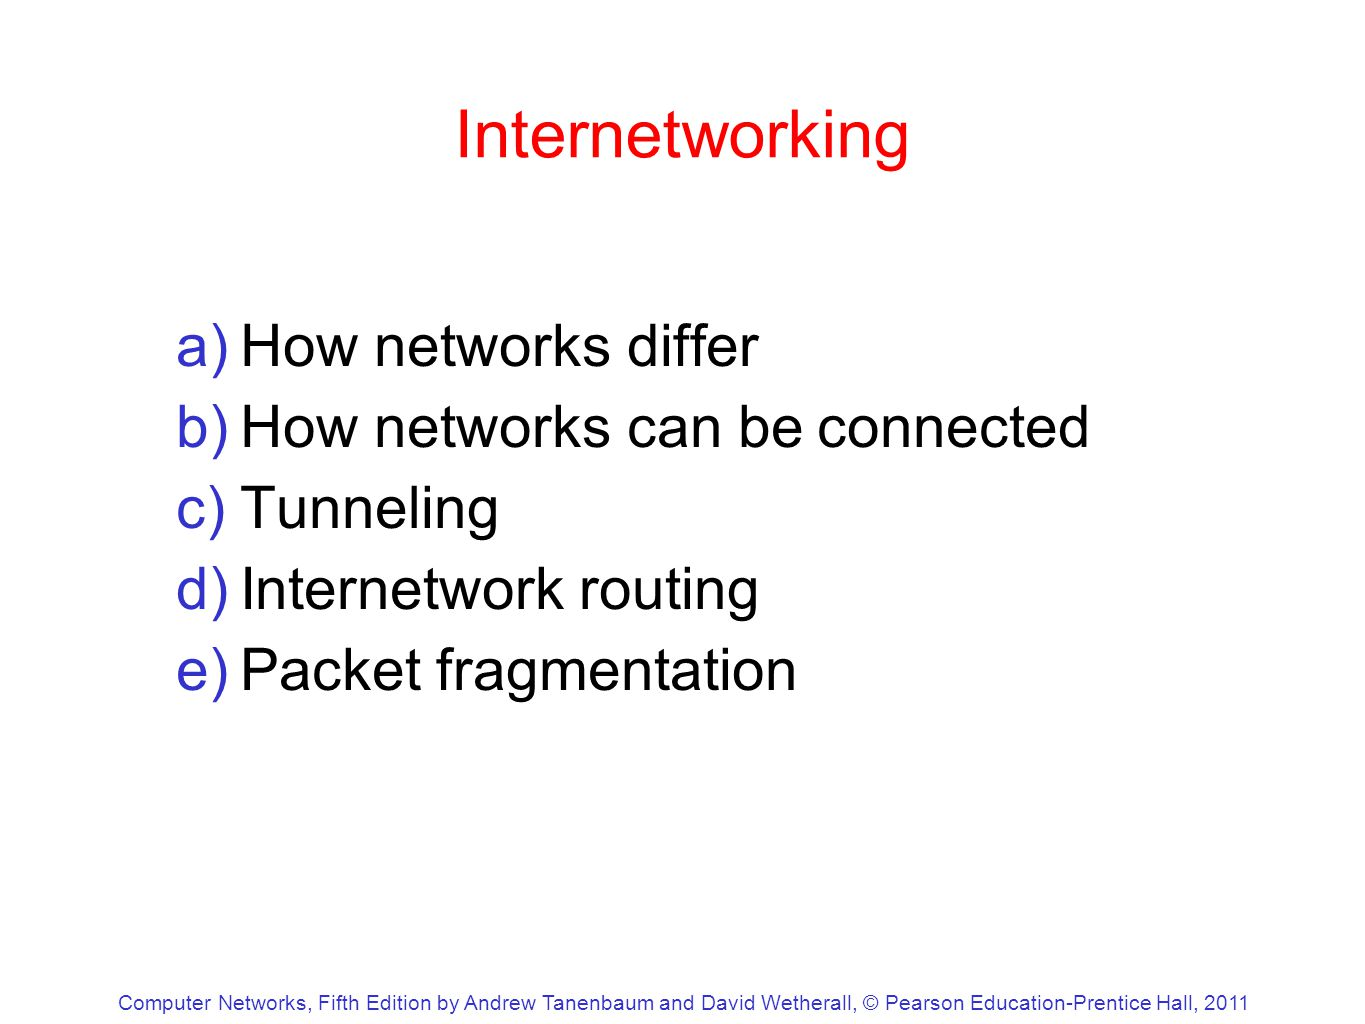 Computer Networks, Fifth Edition by Andrew Tanenbaum and David Wetherall, © Pearson Education-Prentice Hall, 2011 Internetworking a)How networks differ b)How networks can be connected c)Tunneling d)Internetwork routing e)Packet fragmentation